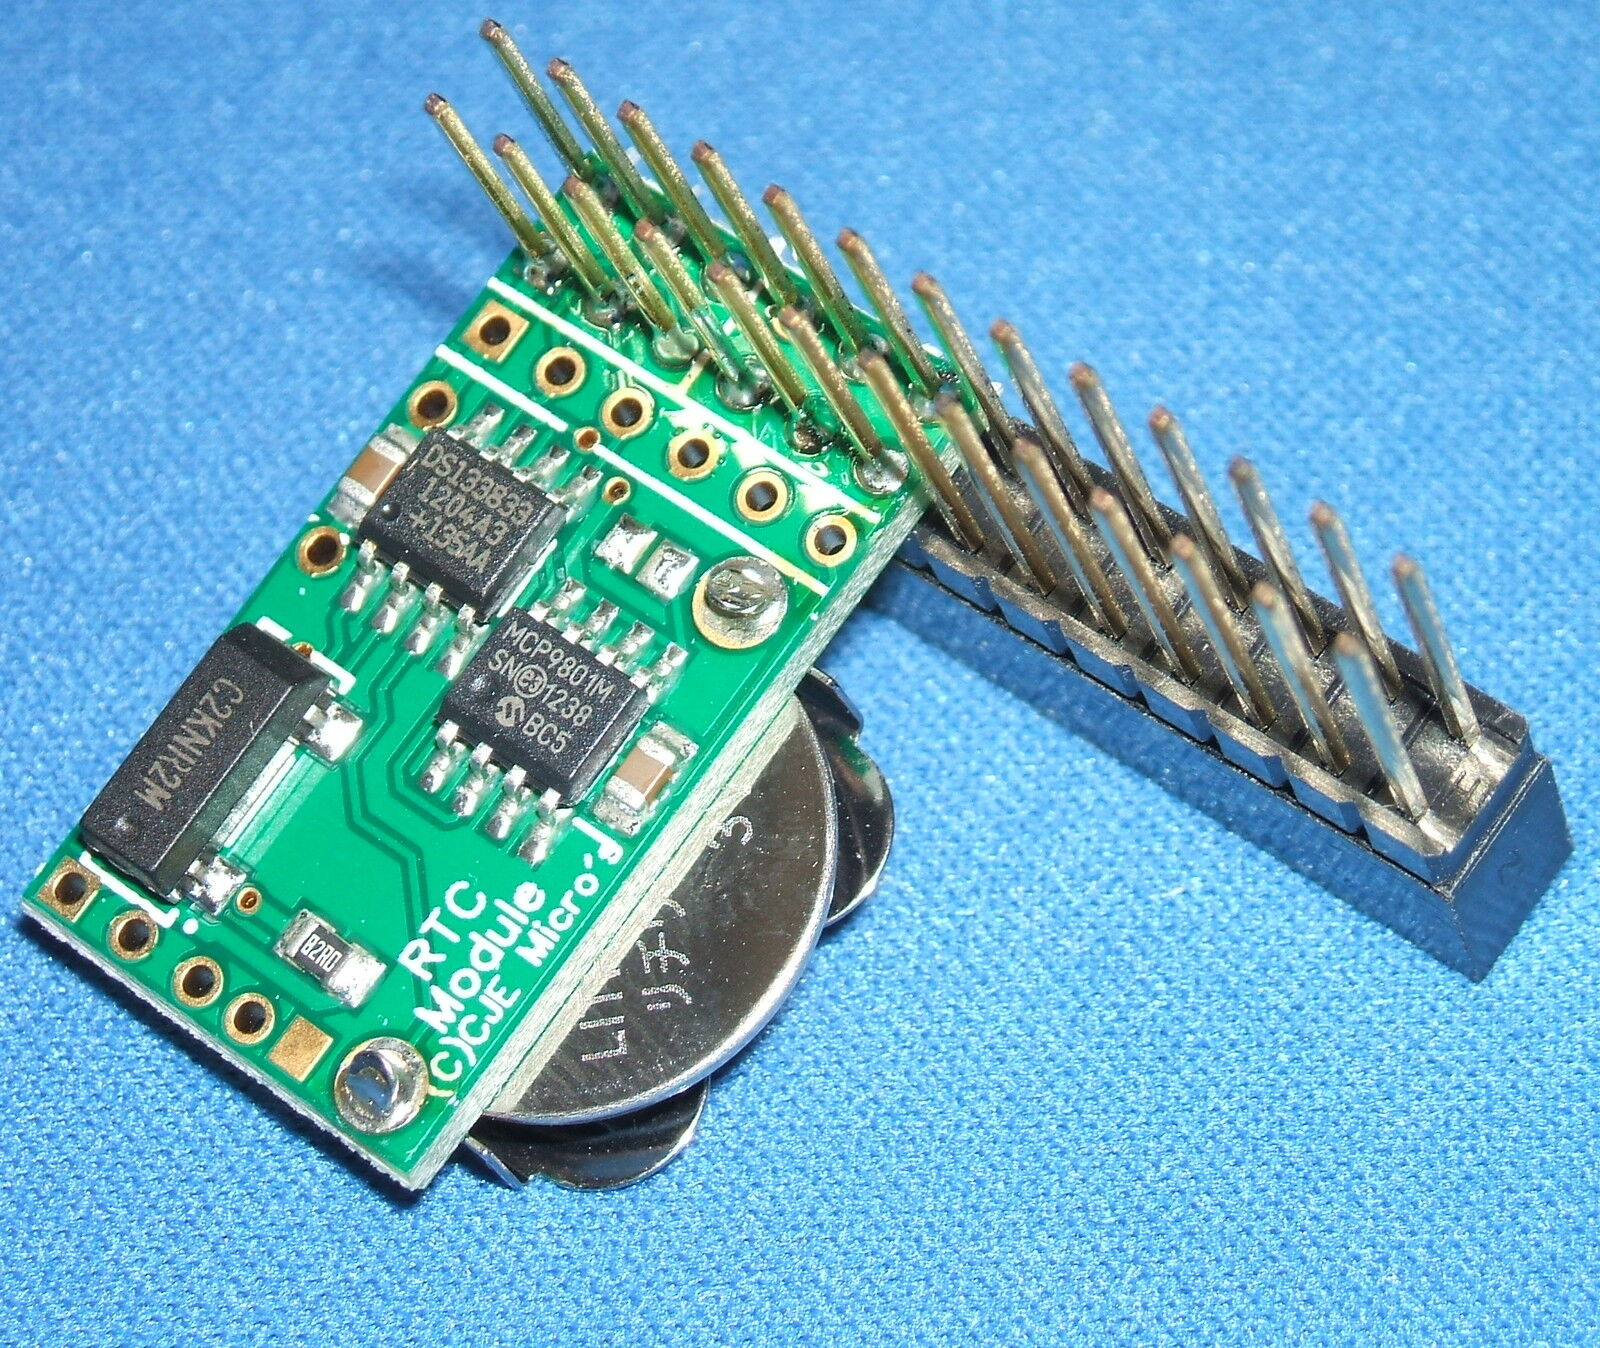 Details about Real Time Clock (RTC) for Raspberry Pi with 26 pin passthru  pins fitted